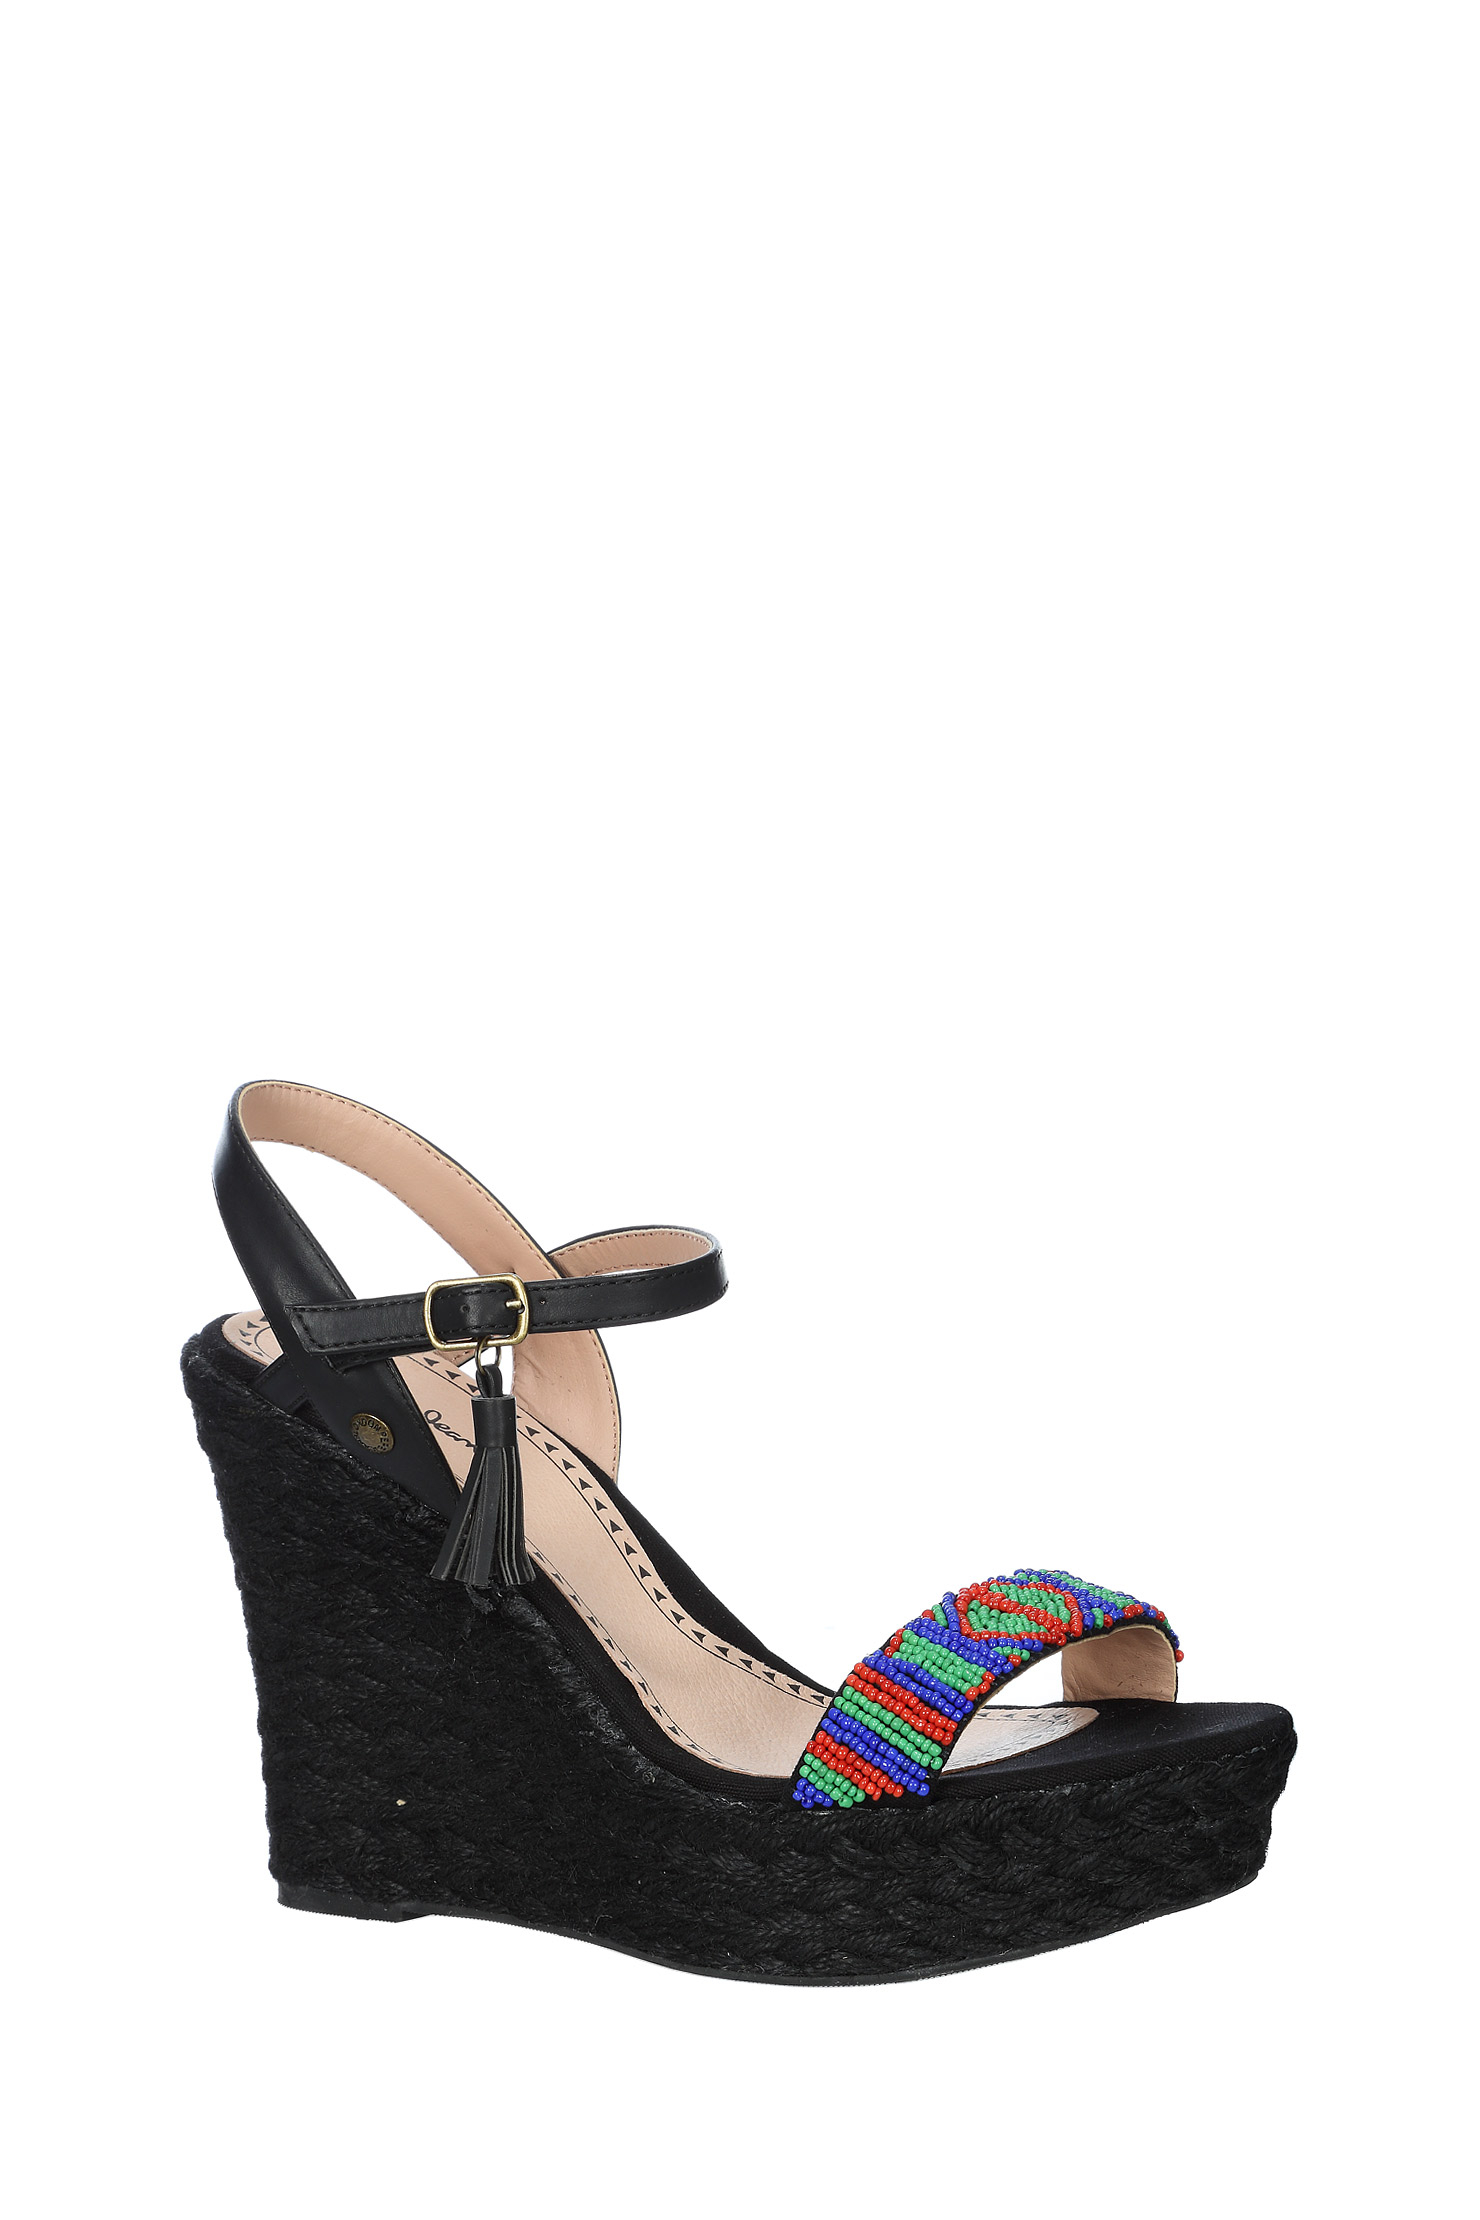 Pepe Jeans Wedges - Shoes Pls10019 Wass in Black